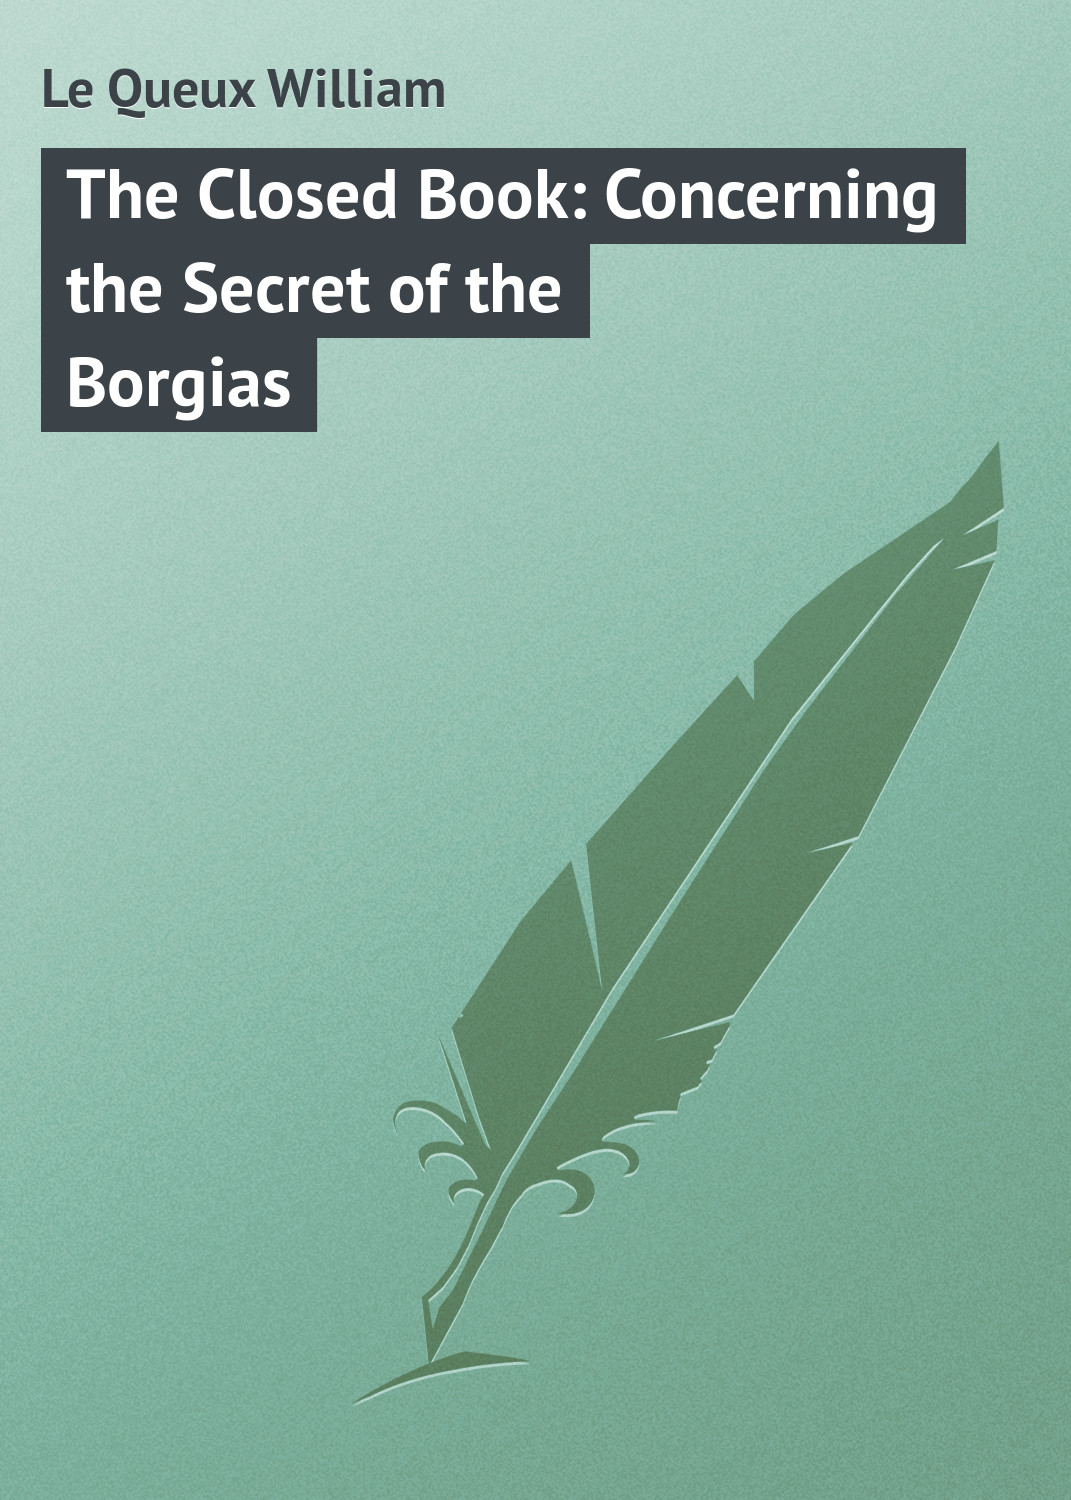 лучшая цена Le Queux William The Closed Book: Concerning the Secret of the Borgias